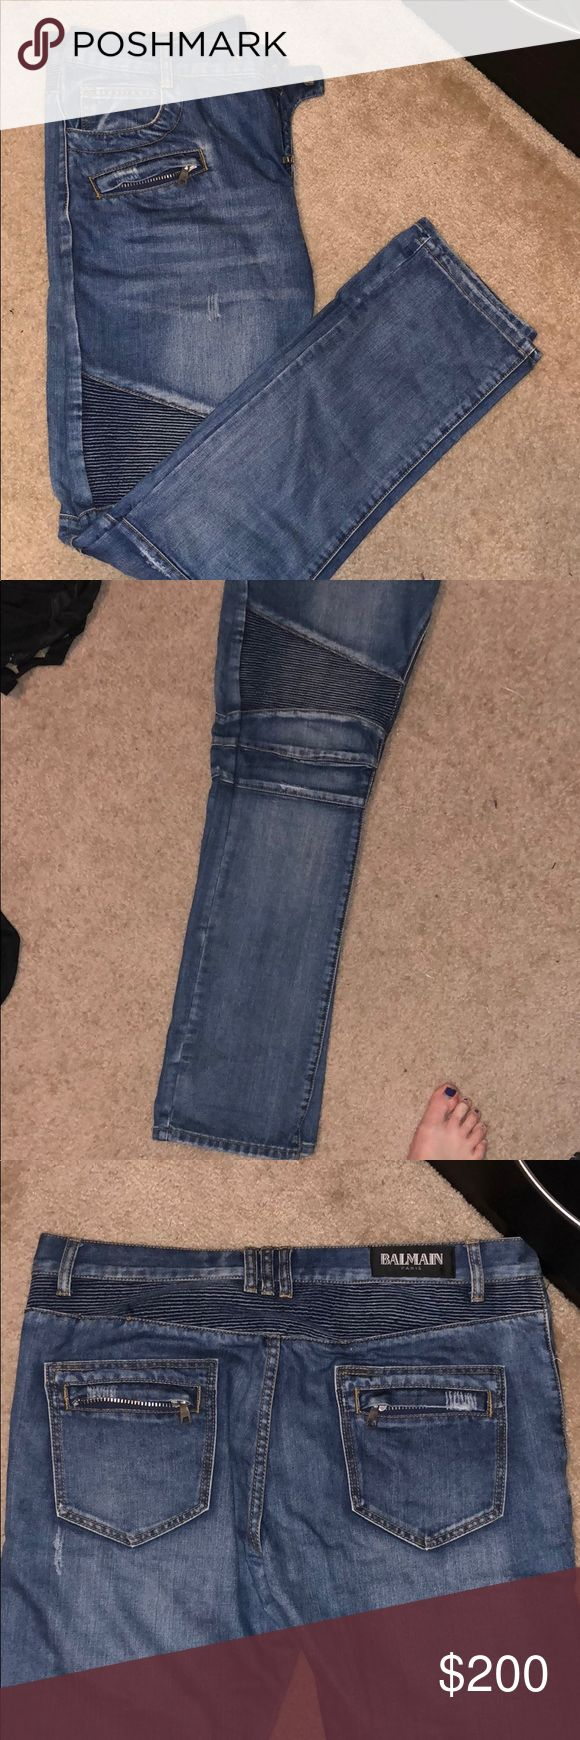 Balmain biker jeans Great condition, just never wear them! No stains or rips! Balmain Jeans Skinny